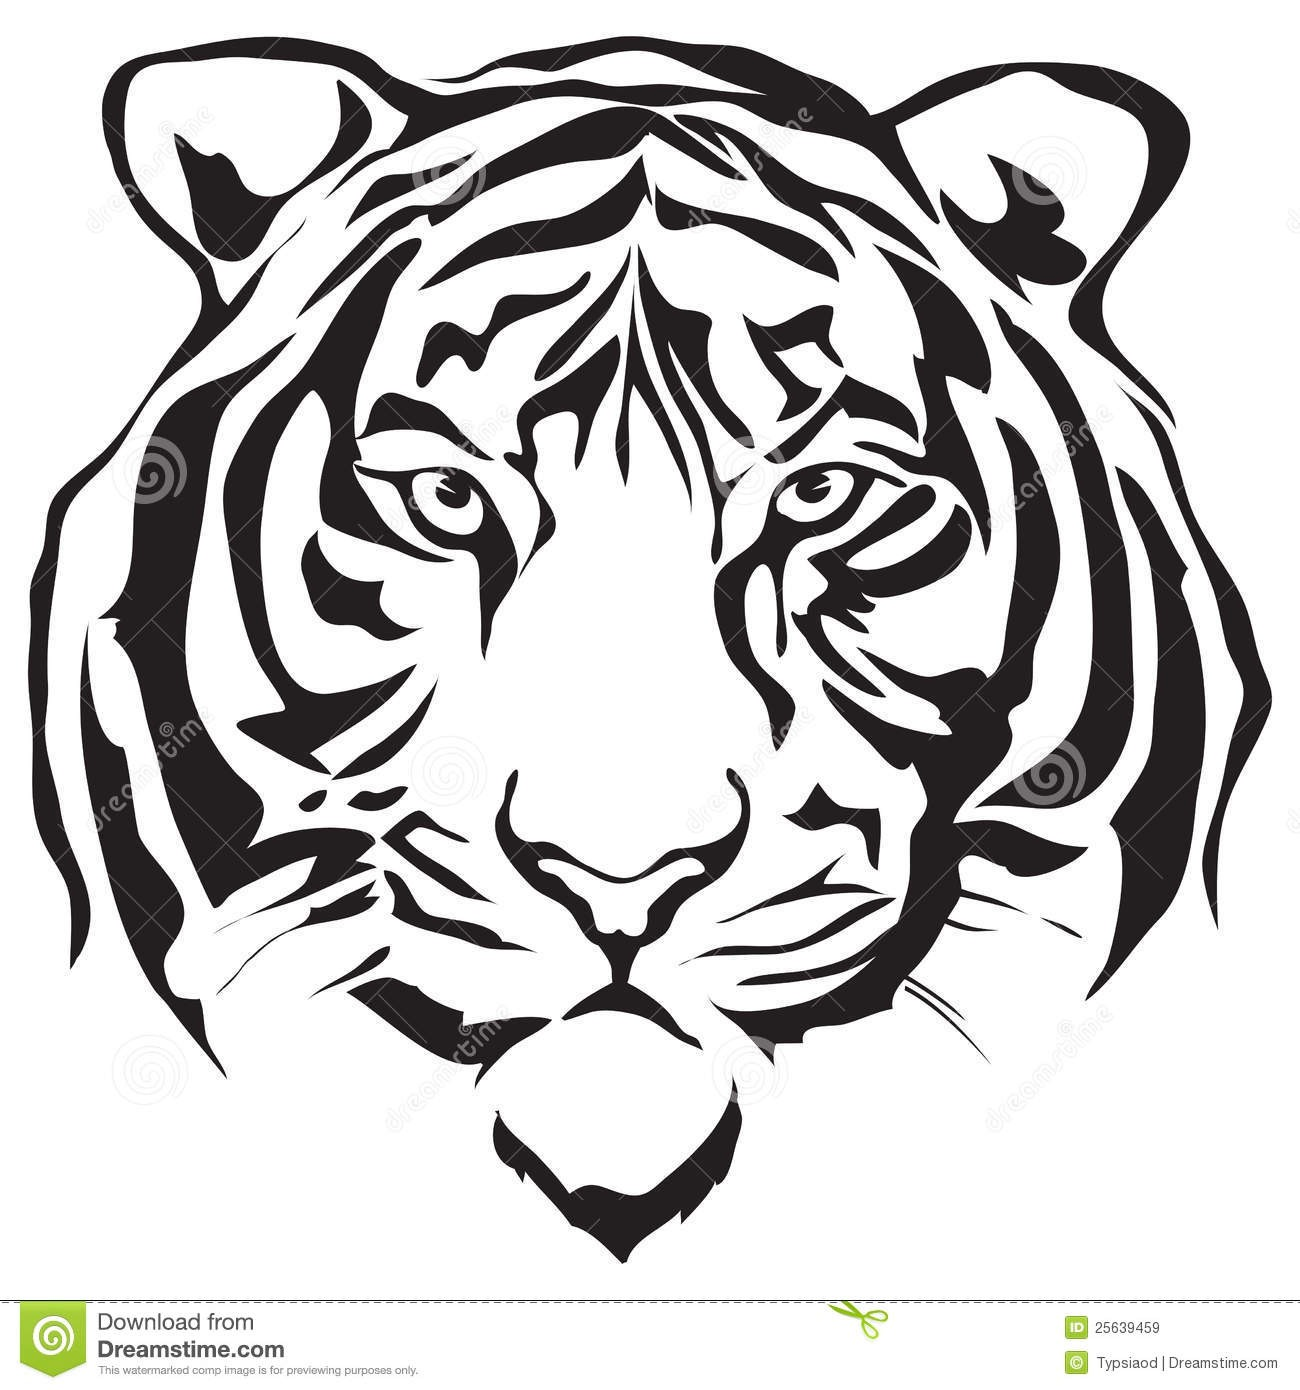 Tiger face clipart black and white banner black and white library Tiger Clipart Black And White Free | Free download best ... banner black and white library